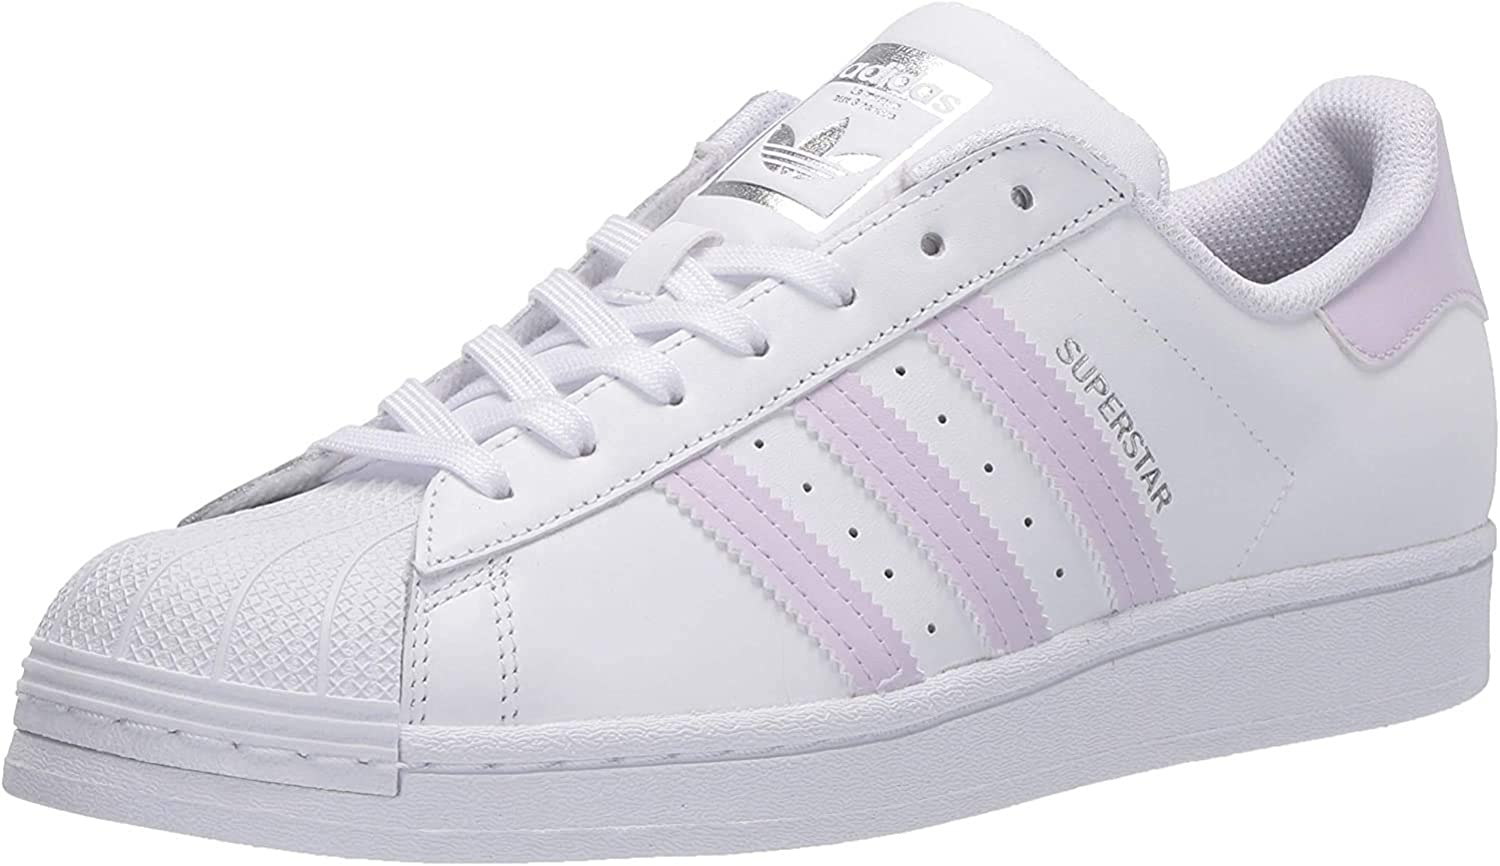 adidas Originals Damen Superstar Turnschuh Weiß Lila Tönung Silber Metallic